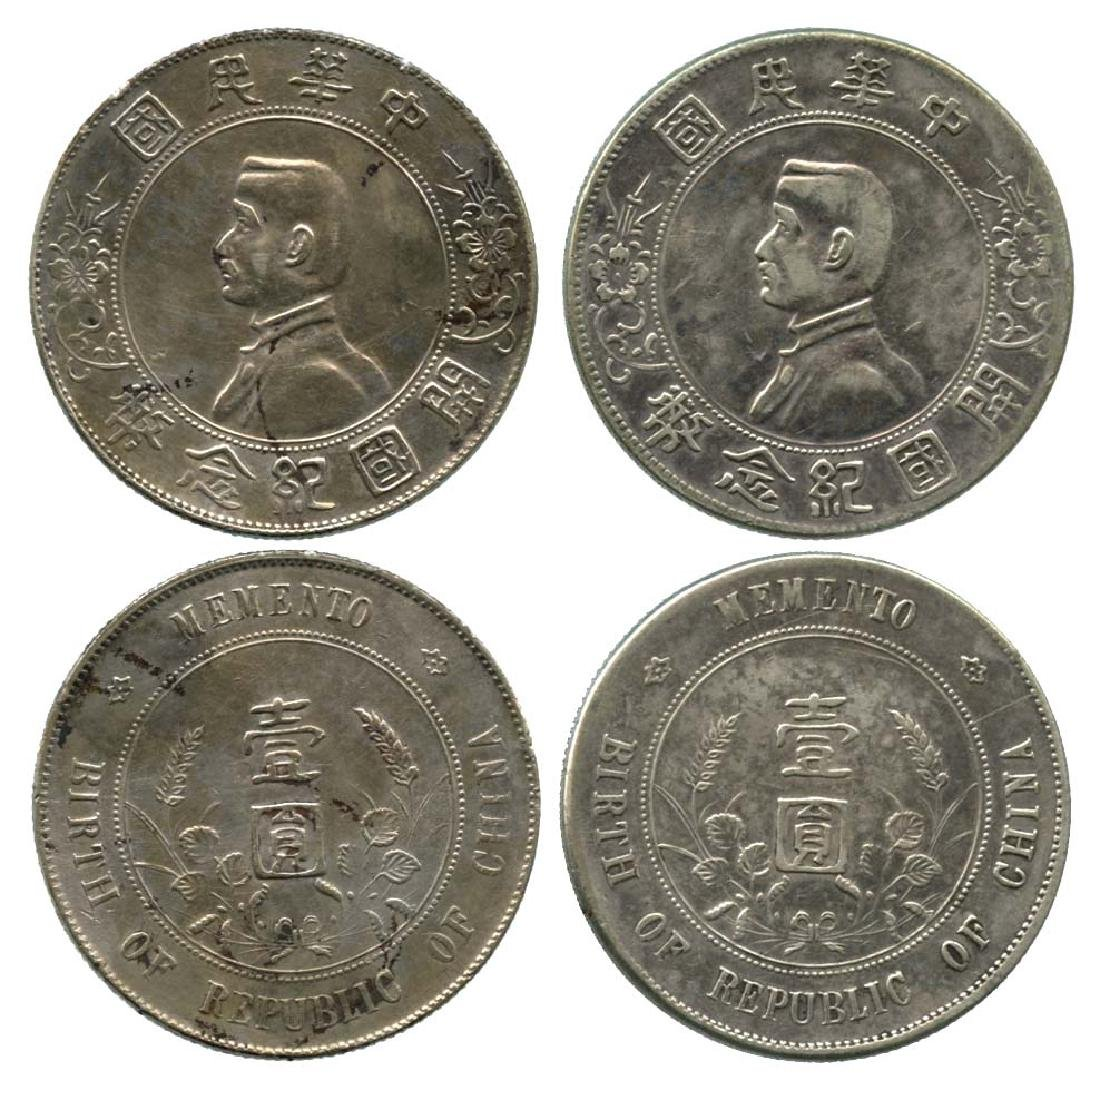 CHINA - Republic, General Issues Silver Dollar ND 1927